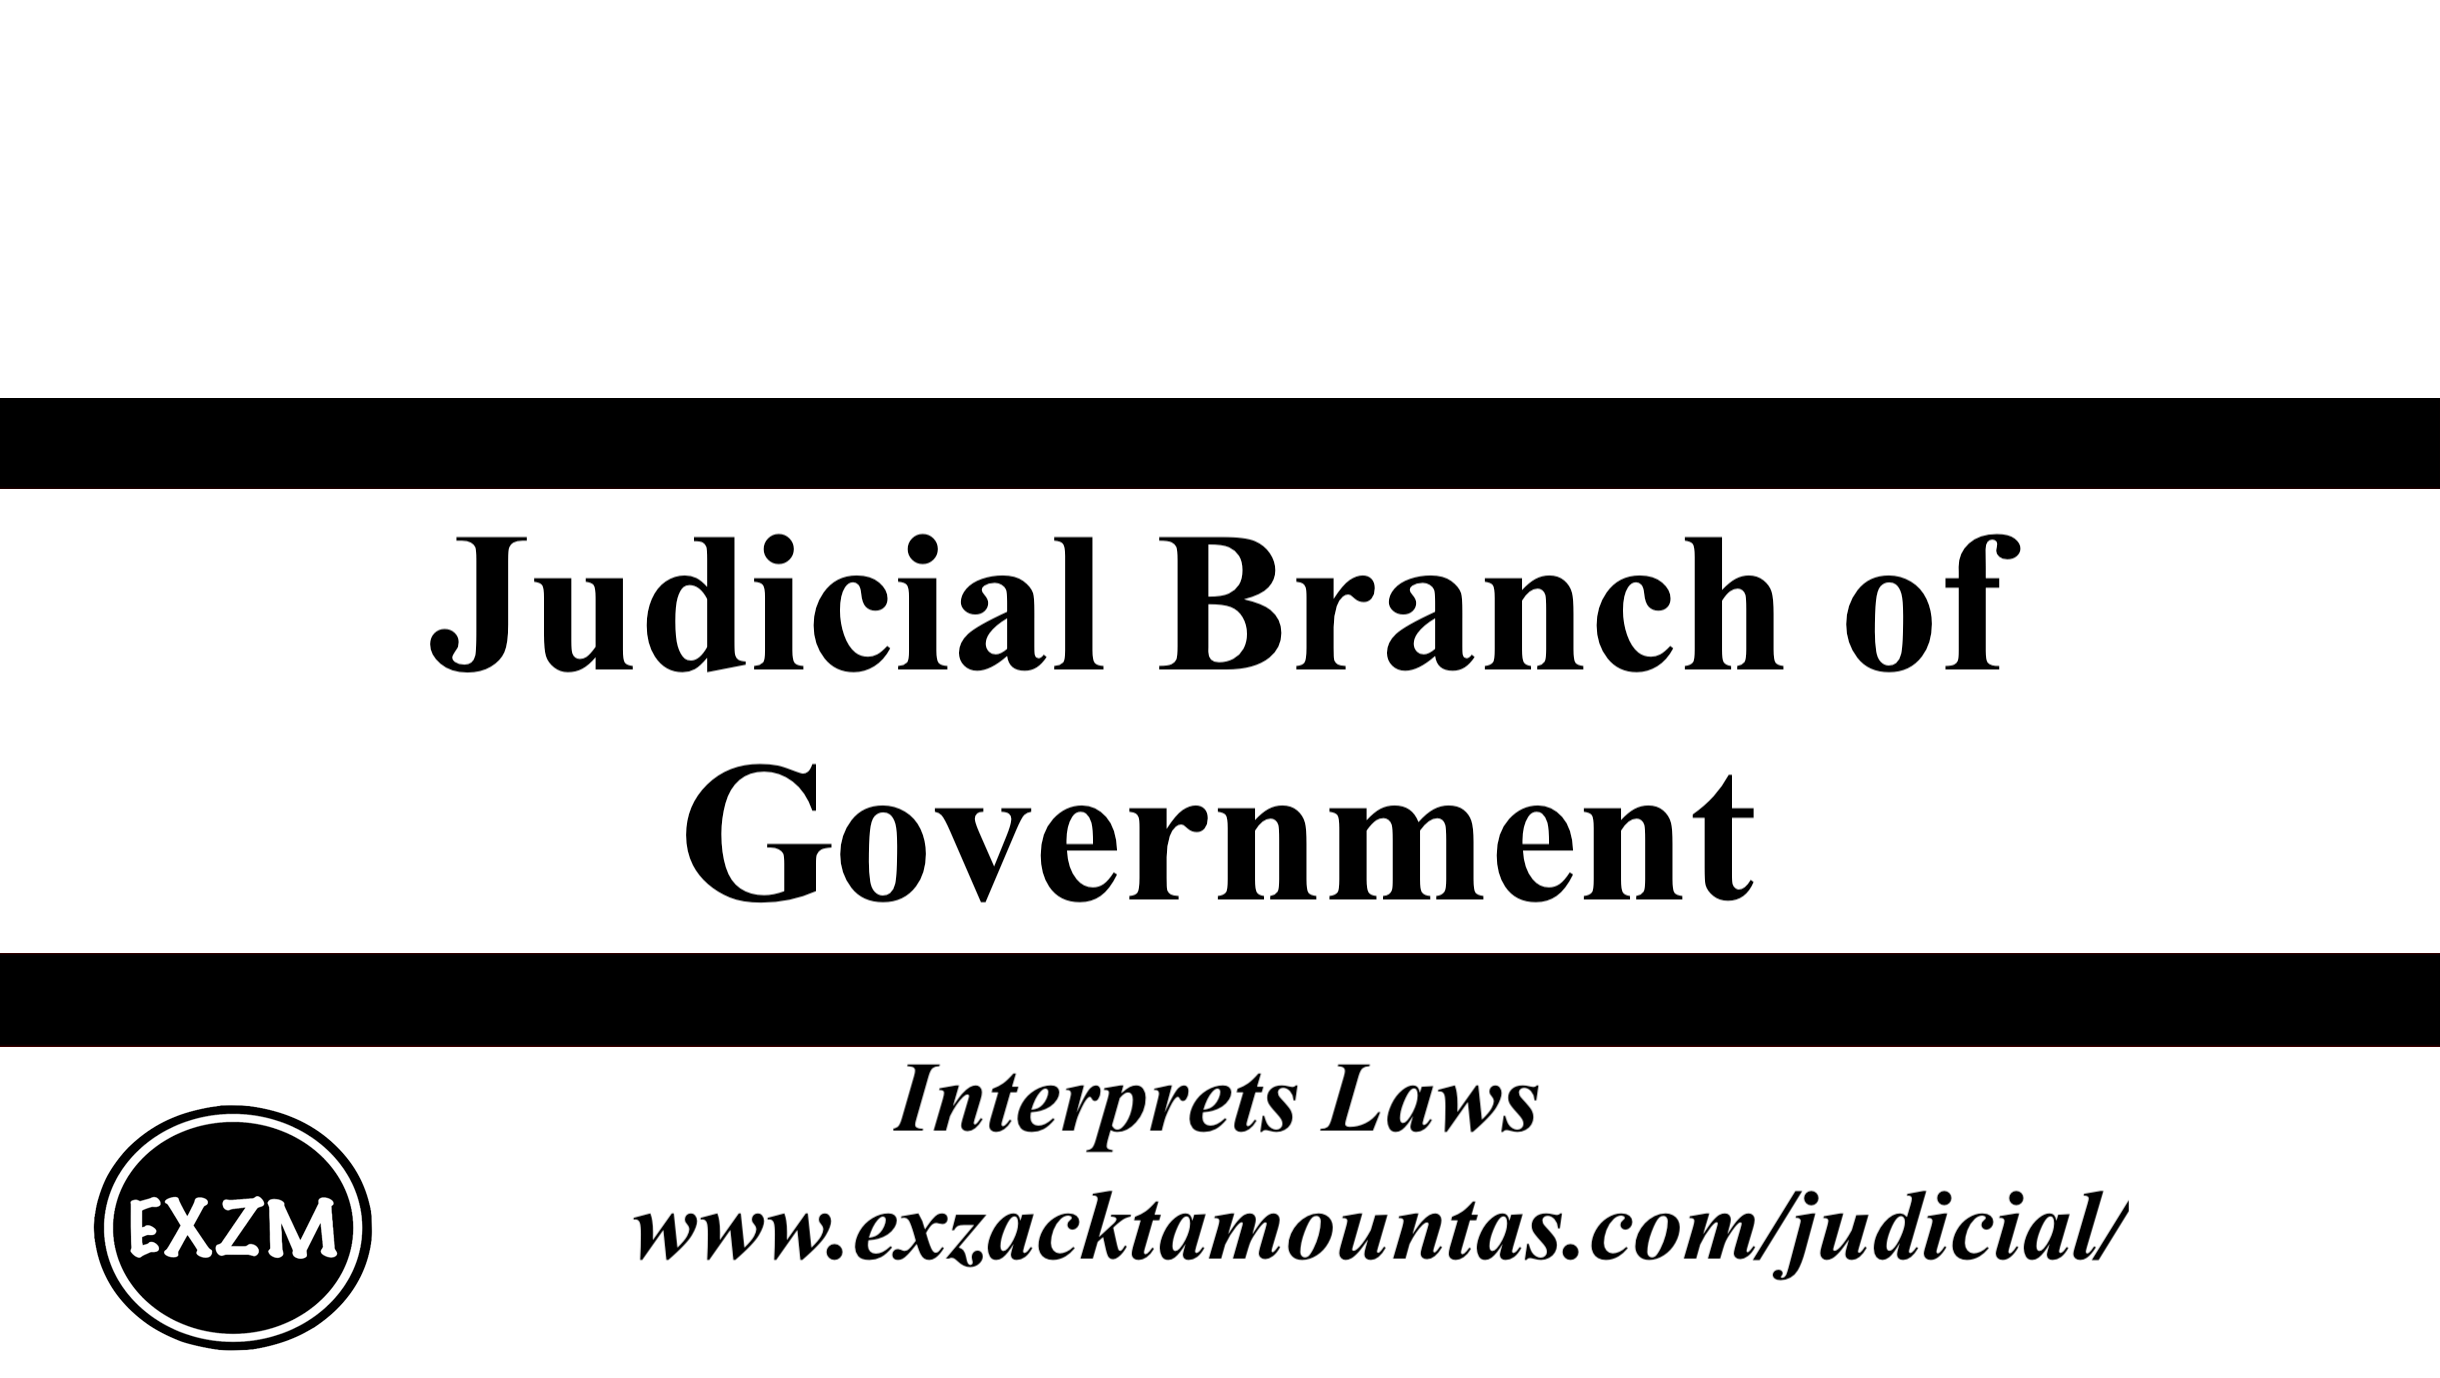 Judicial Branch of Gov EXZM 9 30 2019